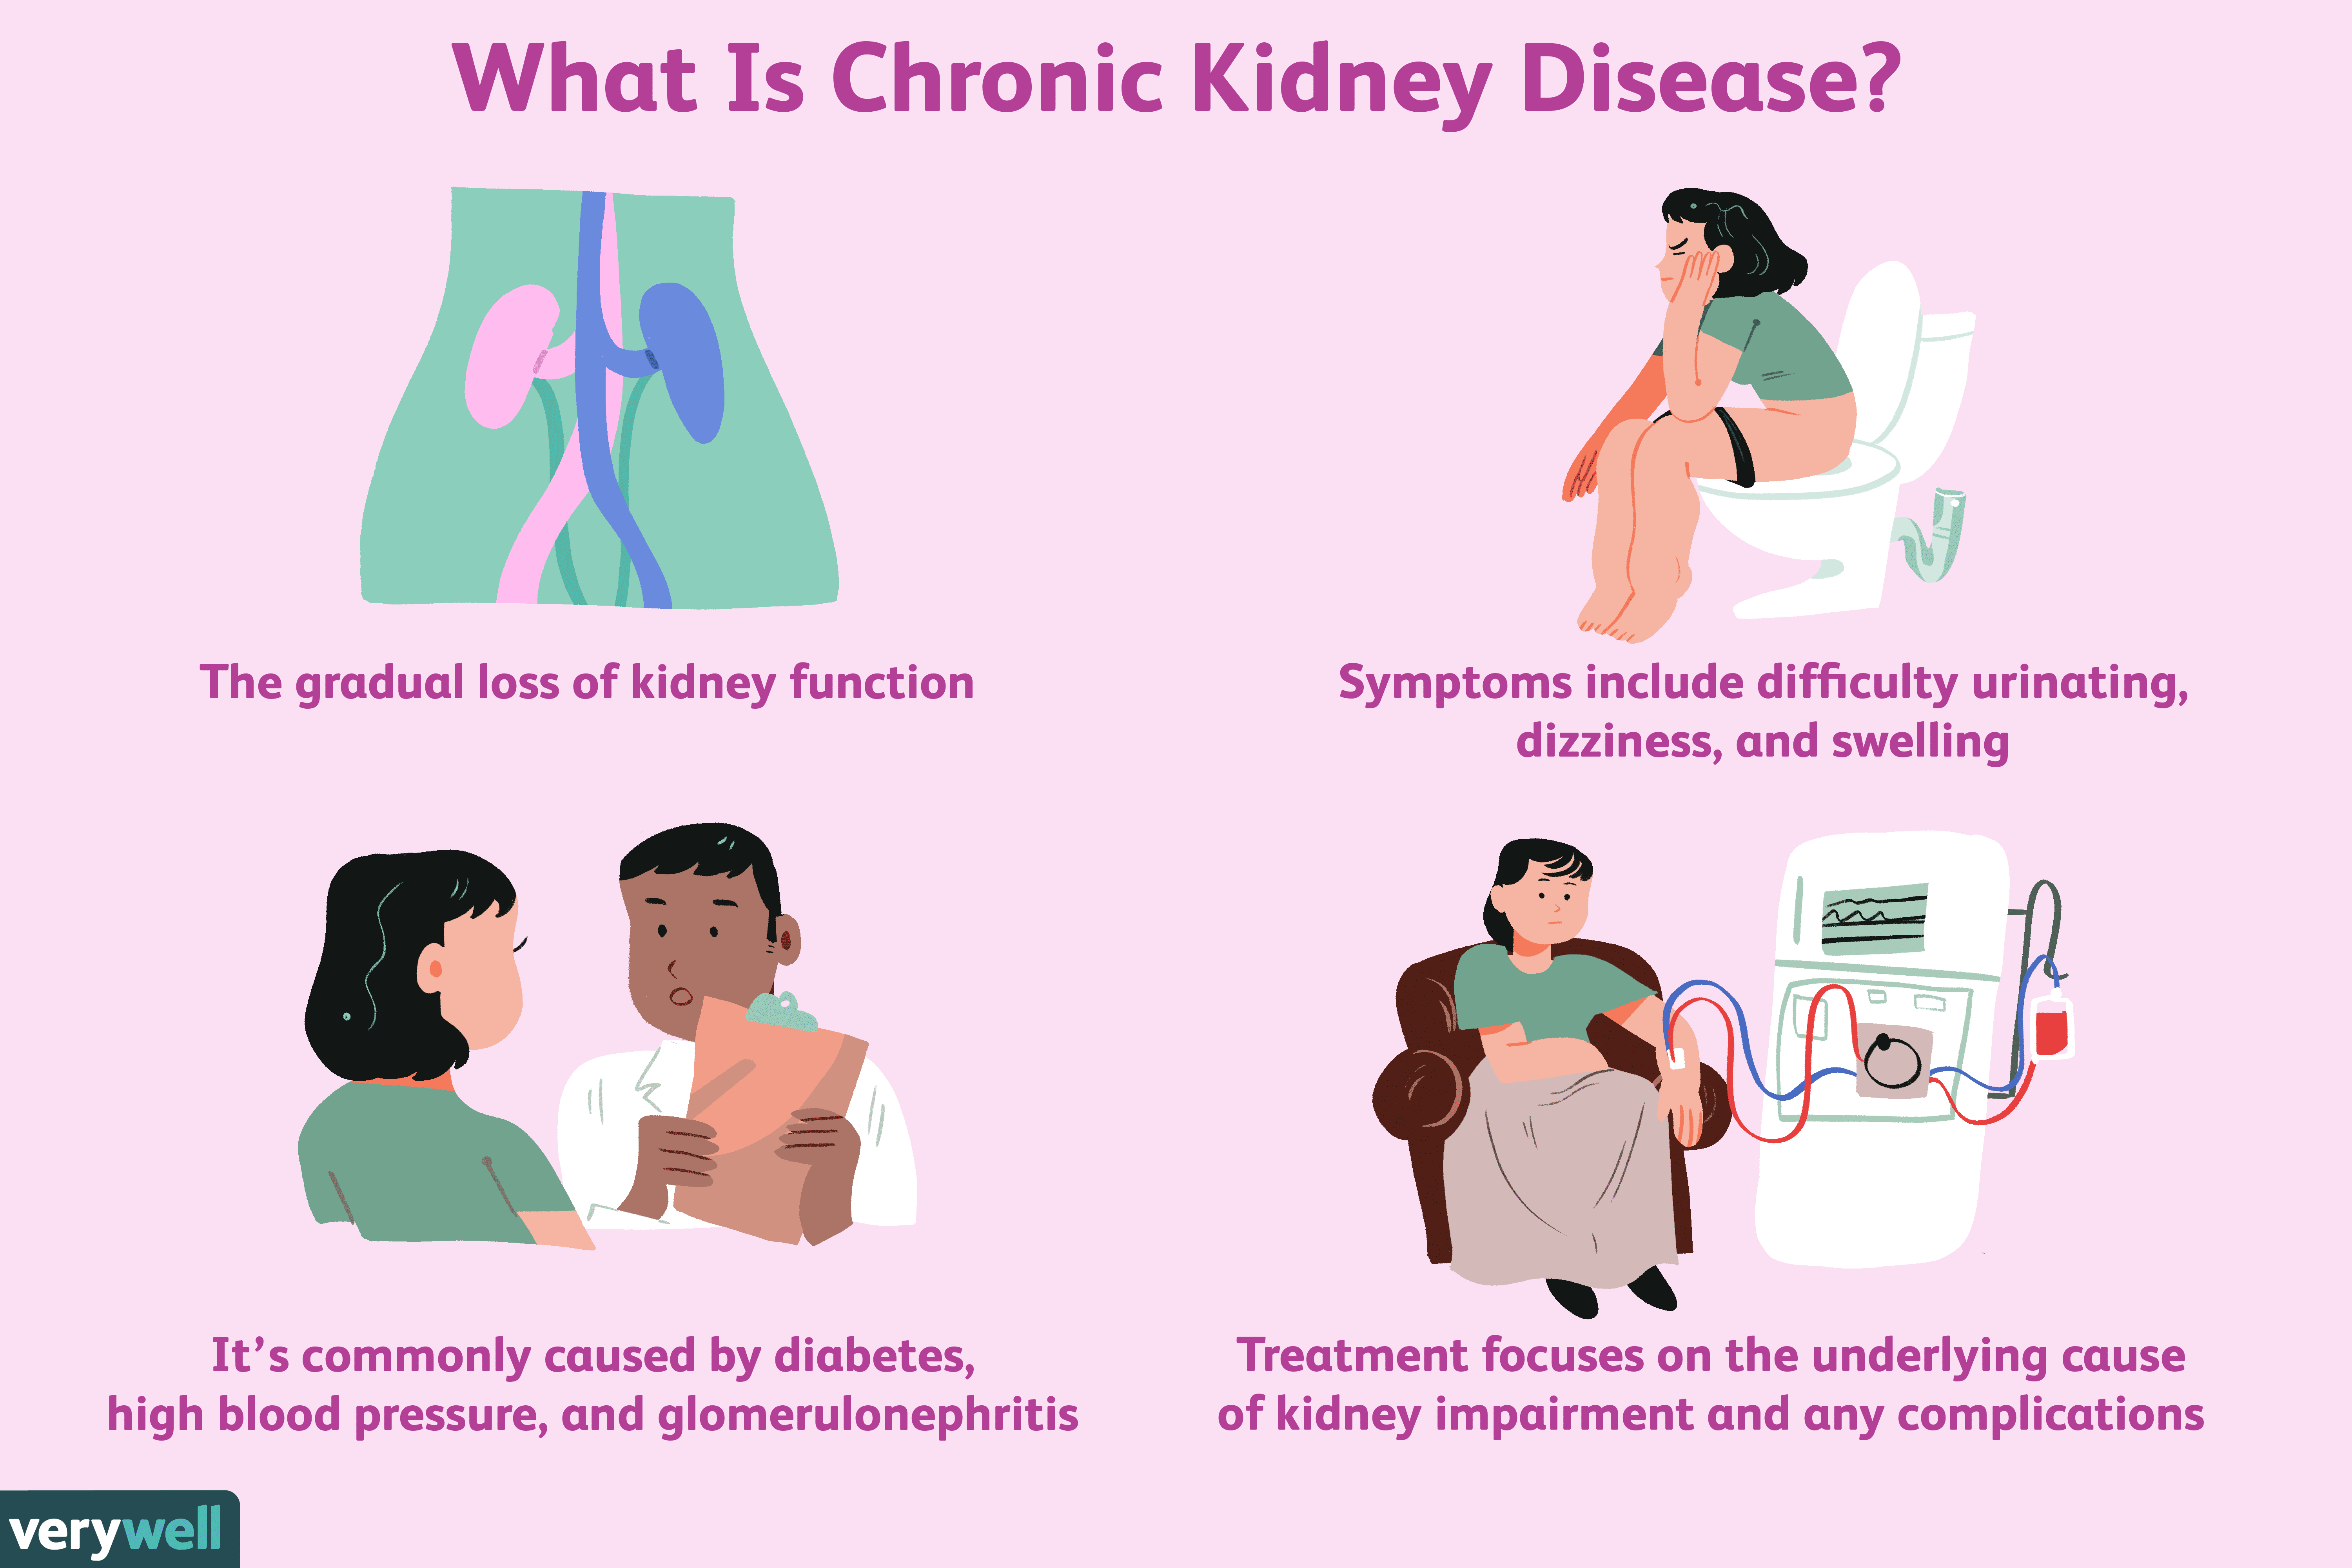 Chronic Kidney Disease (CKD): Overview and More